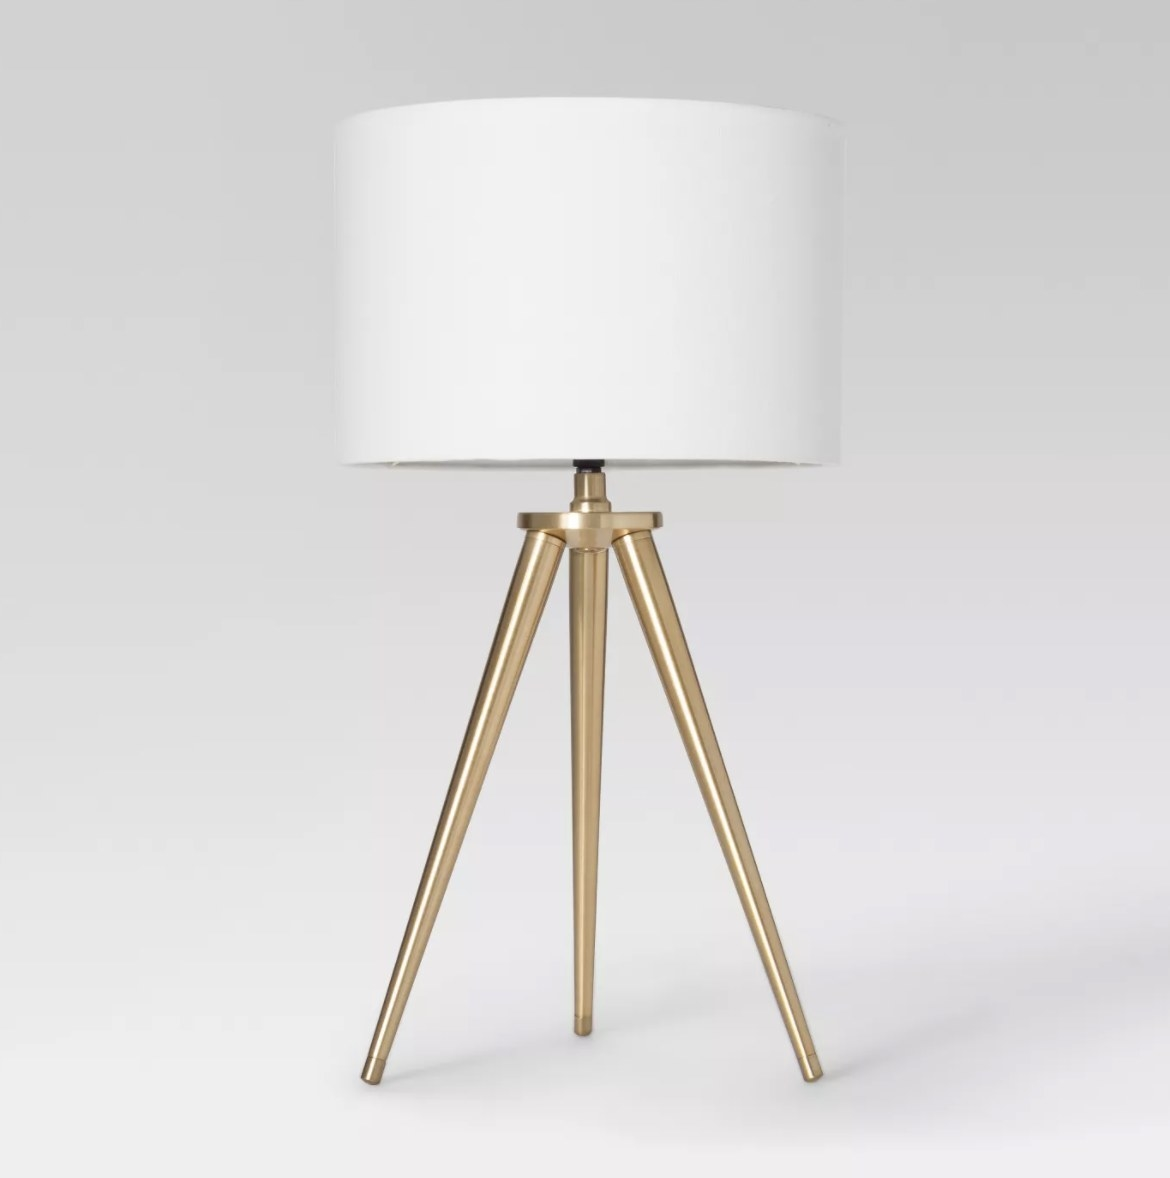 The gold-toned tripod base is sleek and classy with a white drum shade that sits right on top